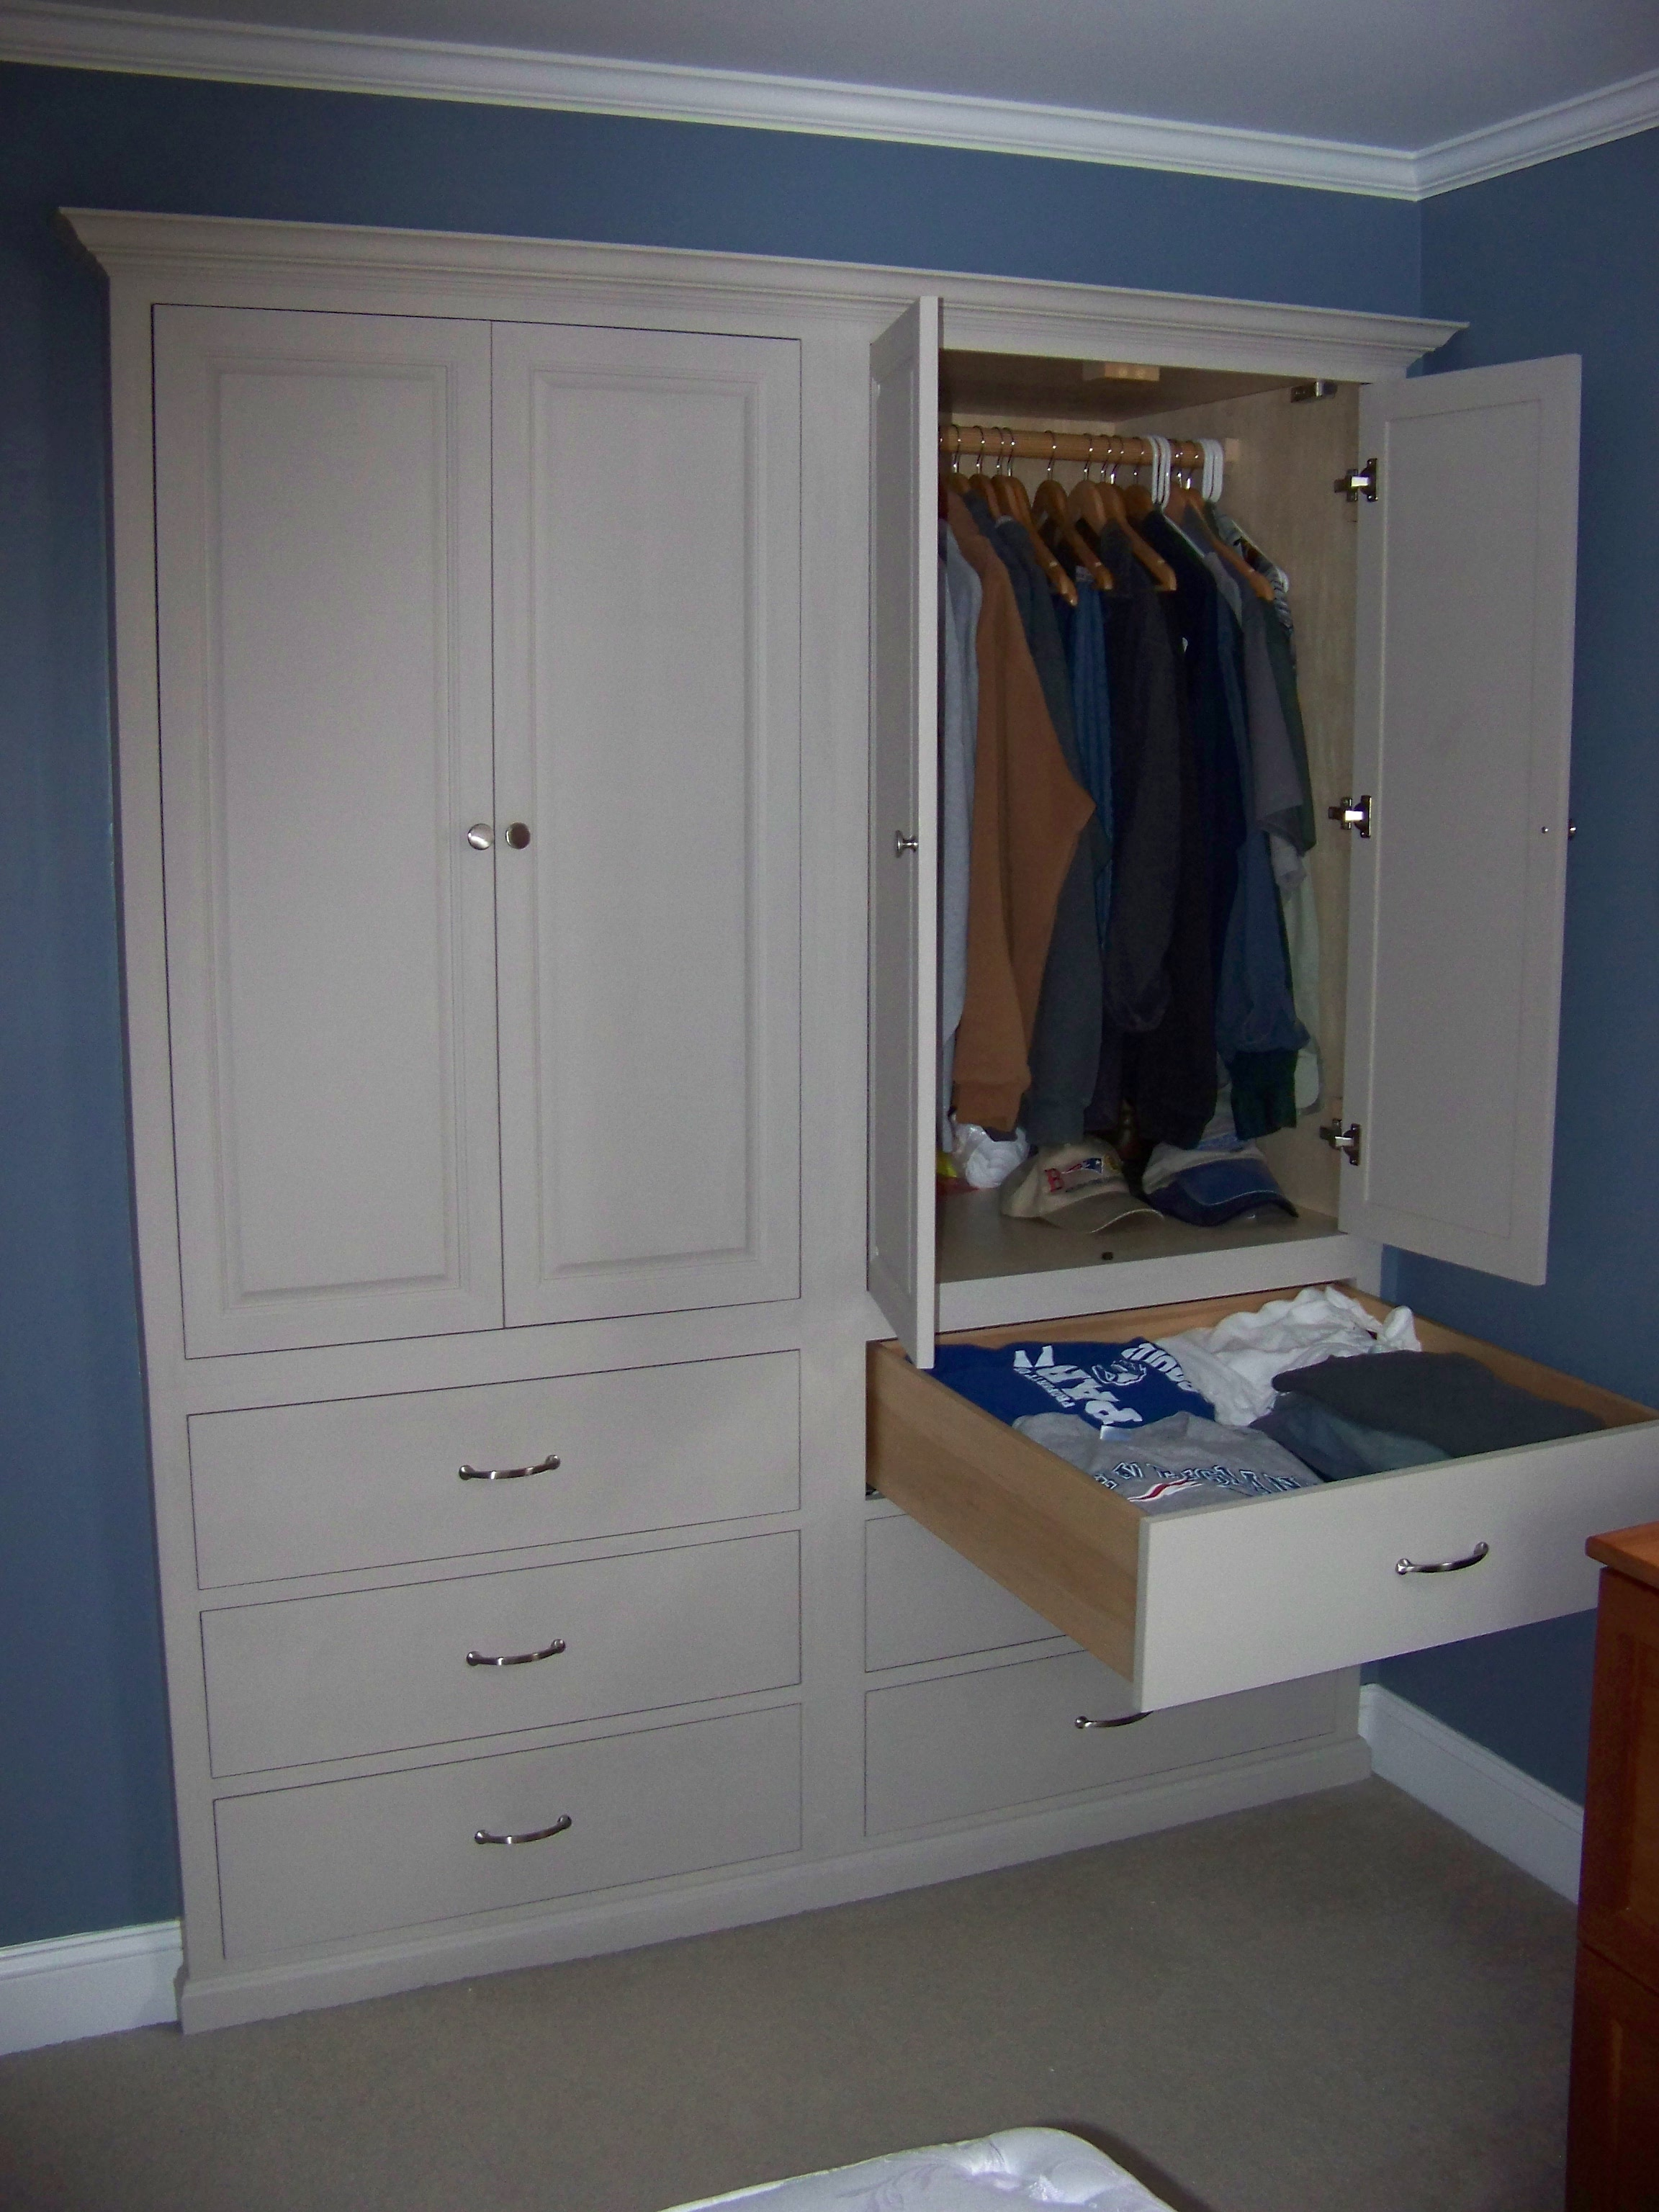 Rubert and Work: Woodworking project wardrobe